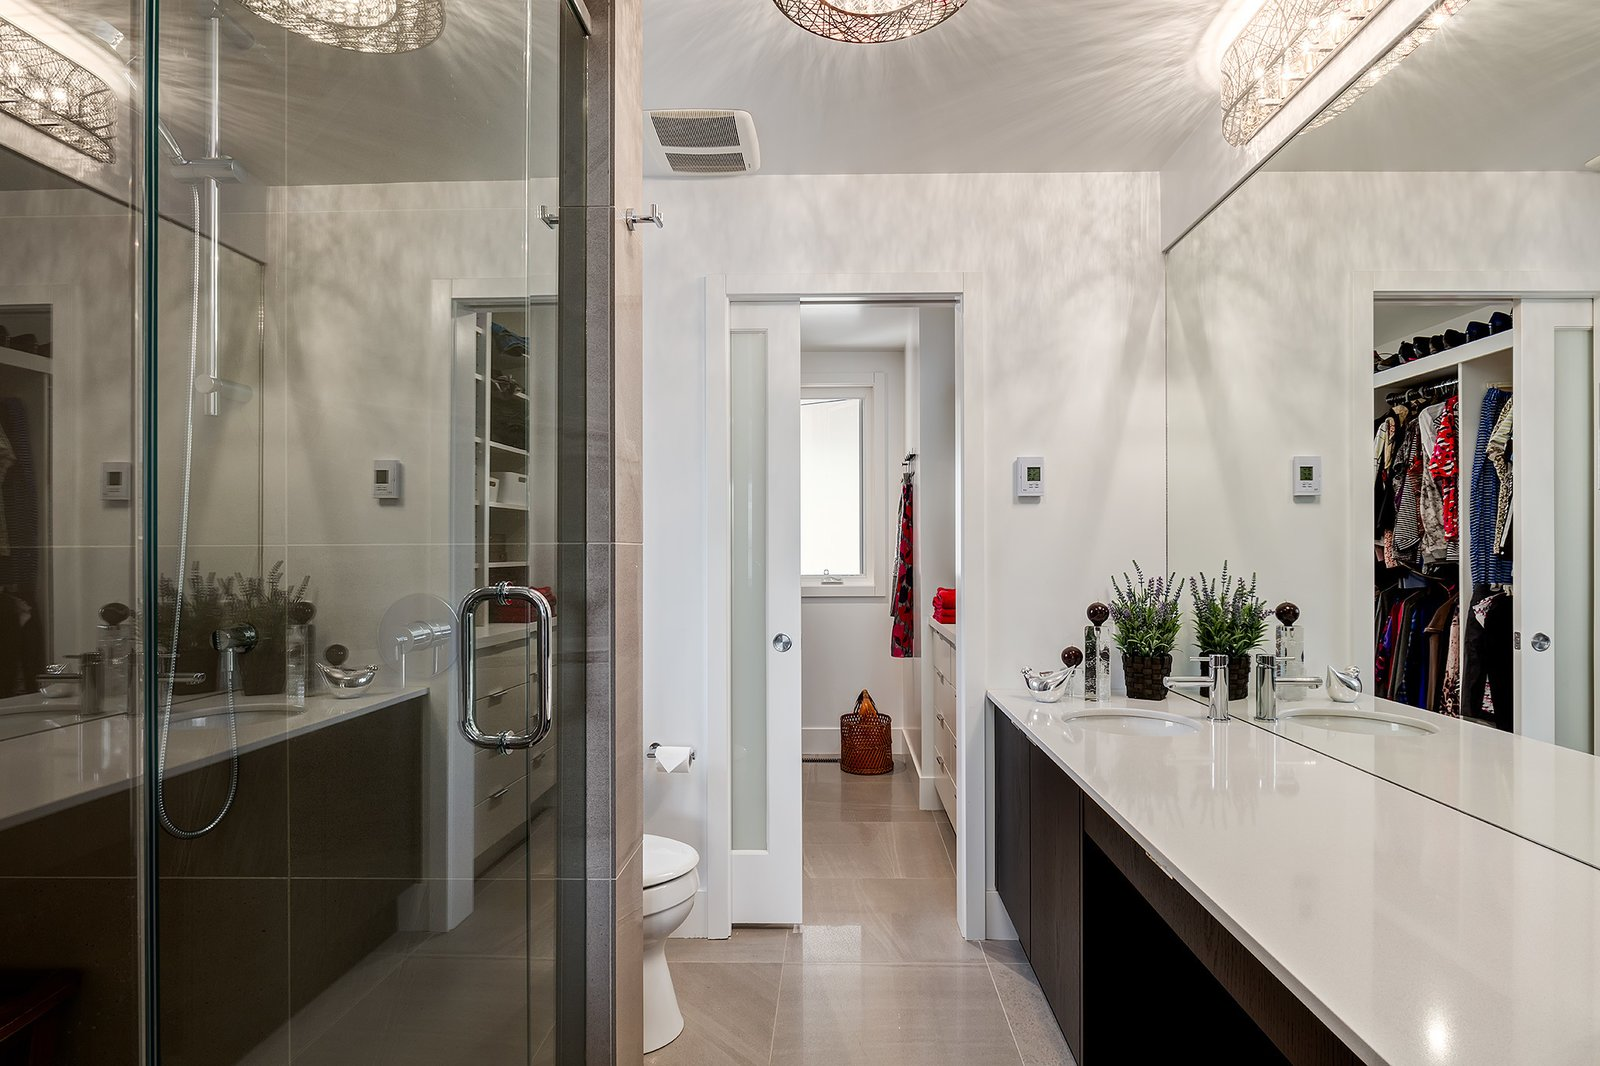 """The mother's en-suite bathroom, like all bathrooms in the house, has the same Caesarstone """"eggshell"""" countertops as the kitchen. Kartners """"Oslo"""" collection makes up all of the bathroom's hardware.  A Calgary Home Makes Space for Three Generations by Kelly Dawson"""